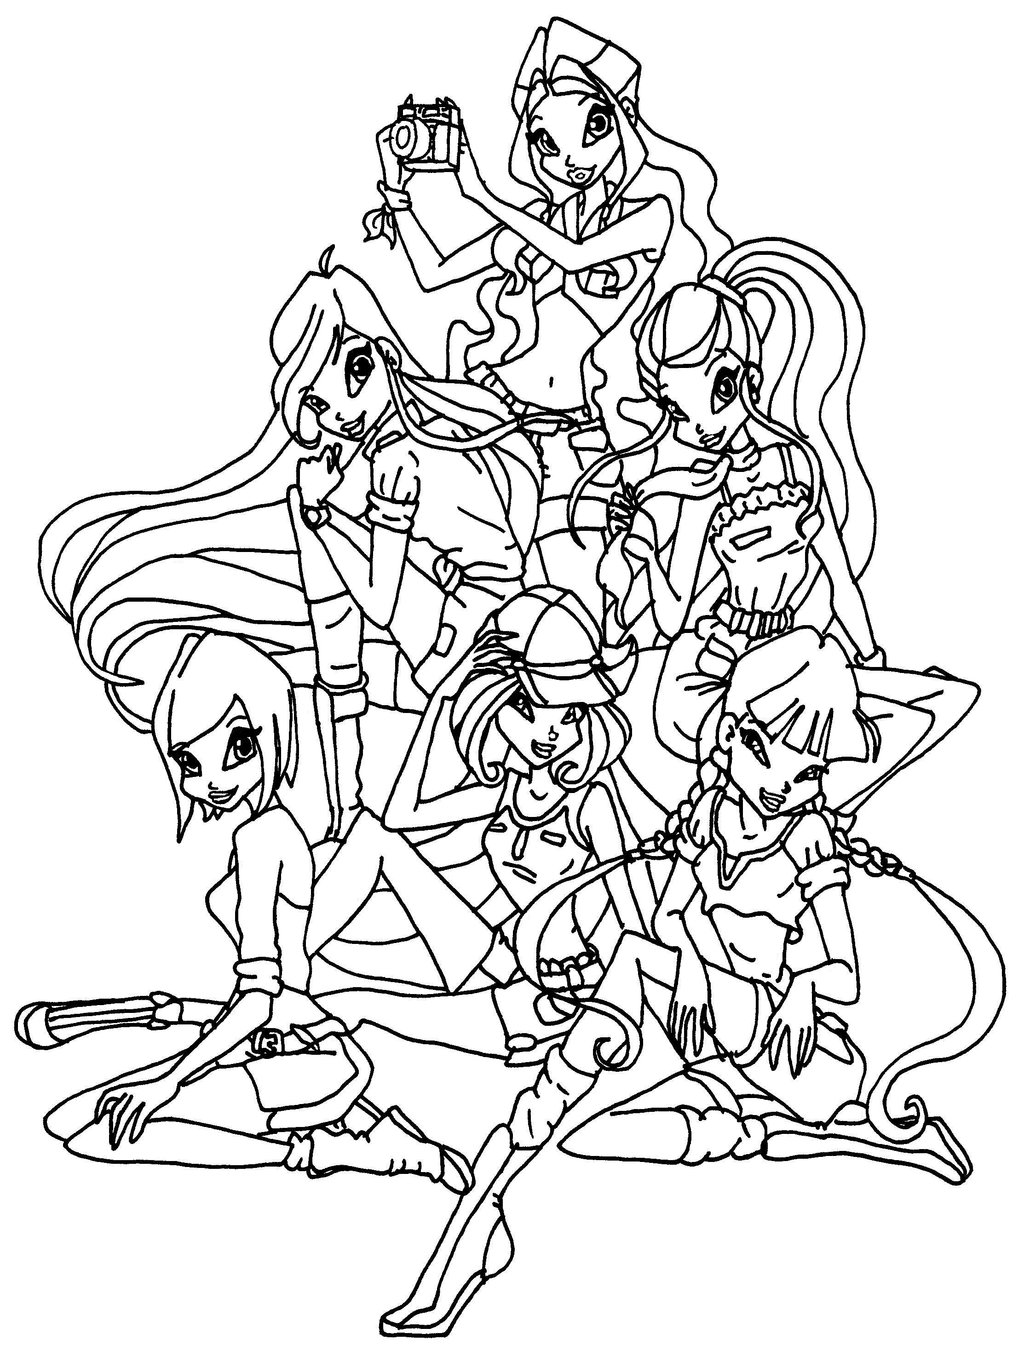 winxs club coloring pages - photo#13